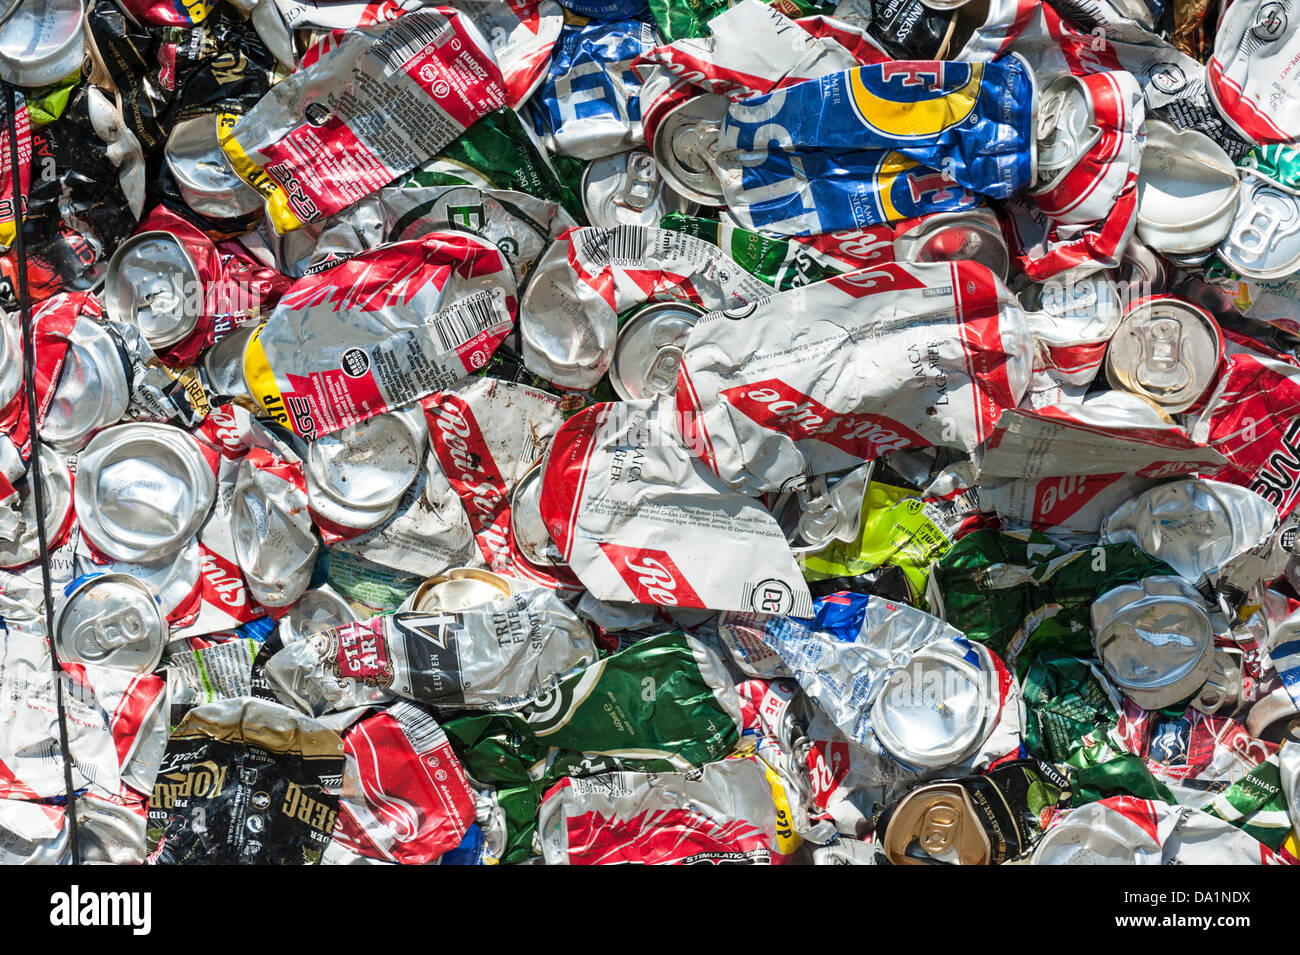 Crushed and baled aluminium cans for recycling - Stock Image